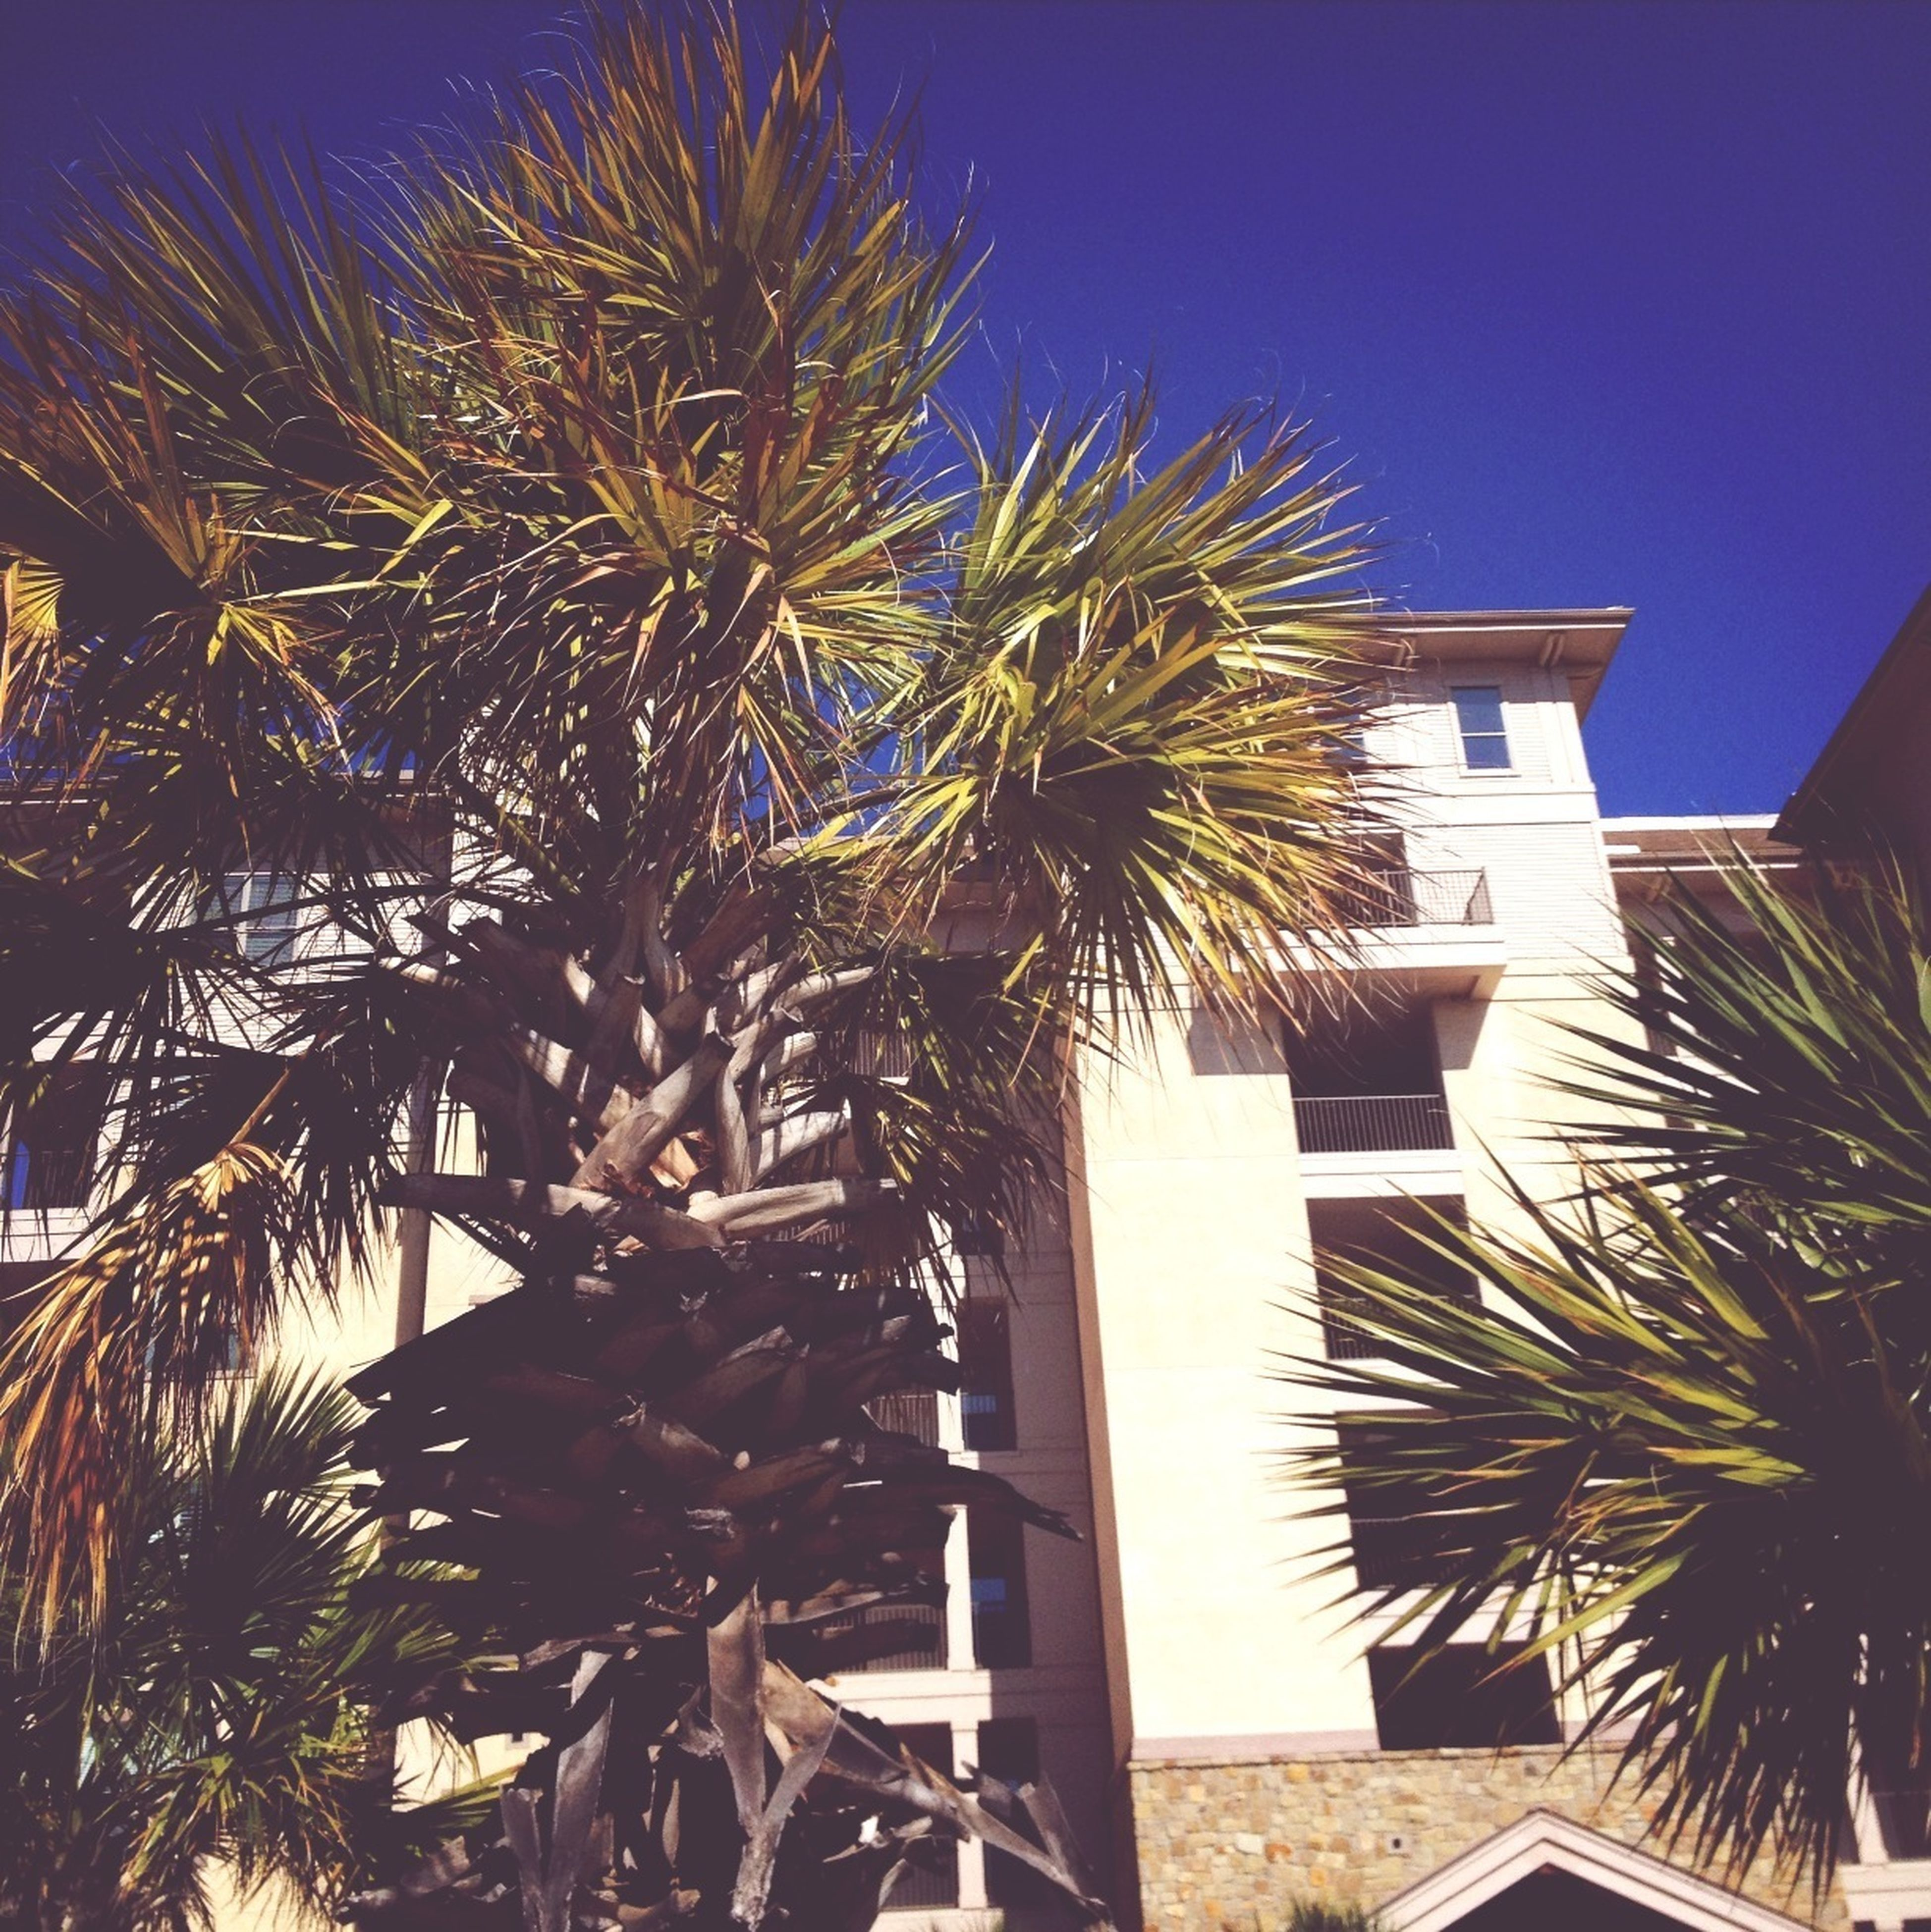 building exterior, palm tree, architecture, built structure, low angle view, tree, clear sky, growth, blue, tall - high, tree trunk, sunlight, building, city, house, sky, residential building, outdoors, branch, no people